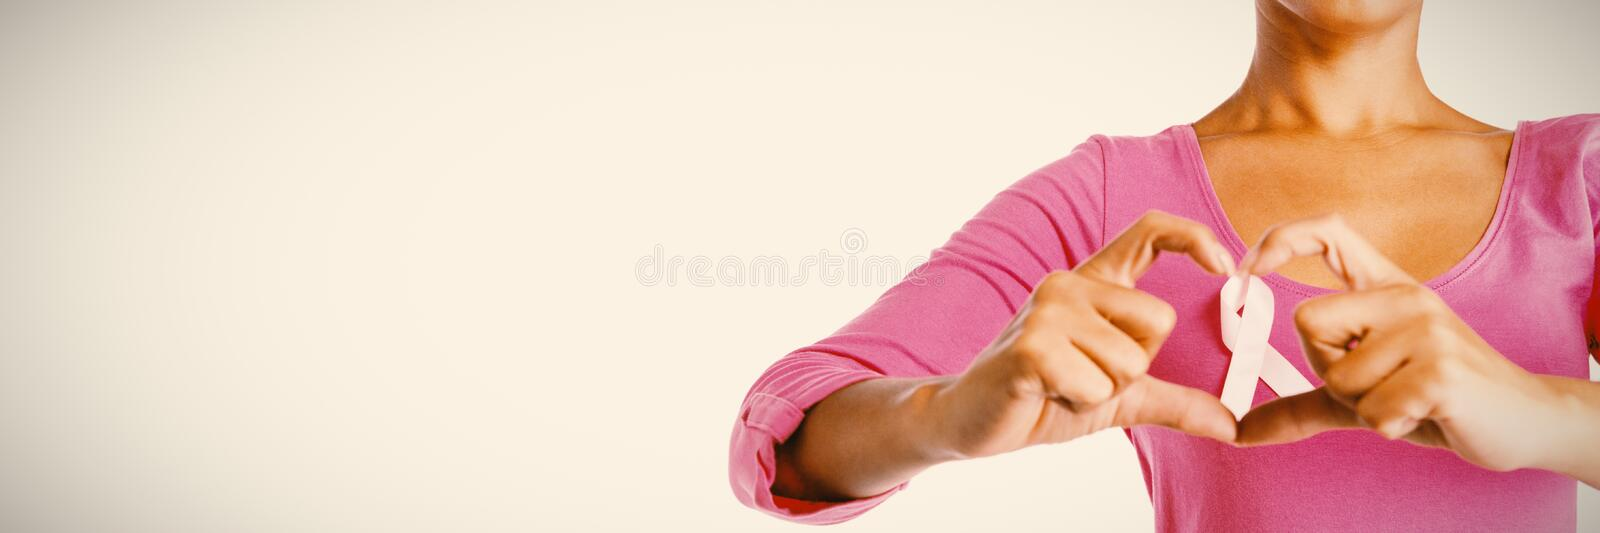 Women wearing pink shirt making heart with their fingers around pink ribbon royalty free stock photos